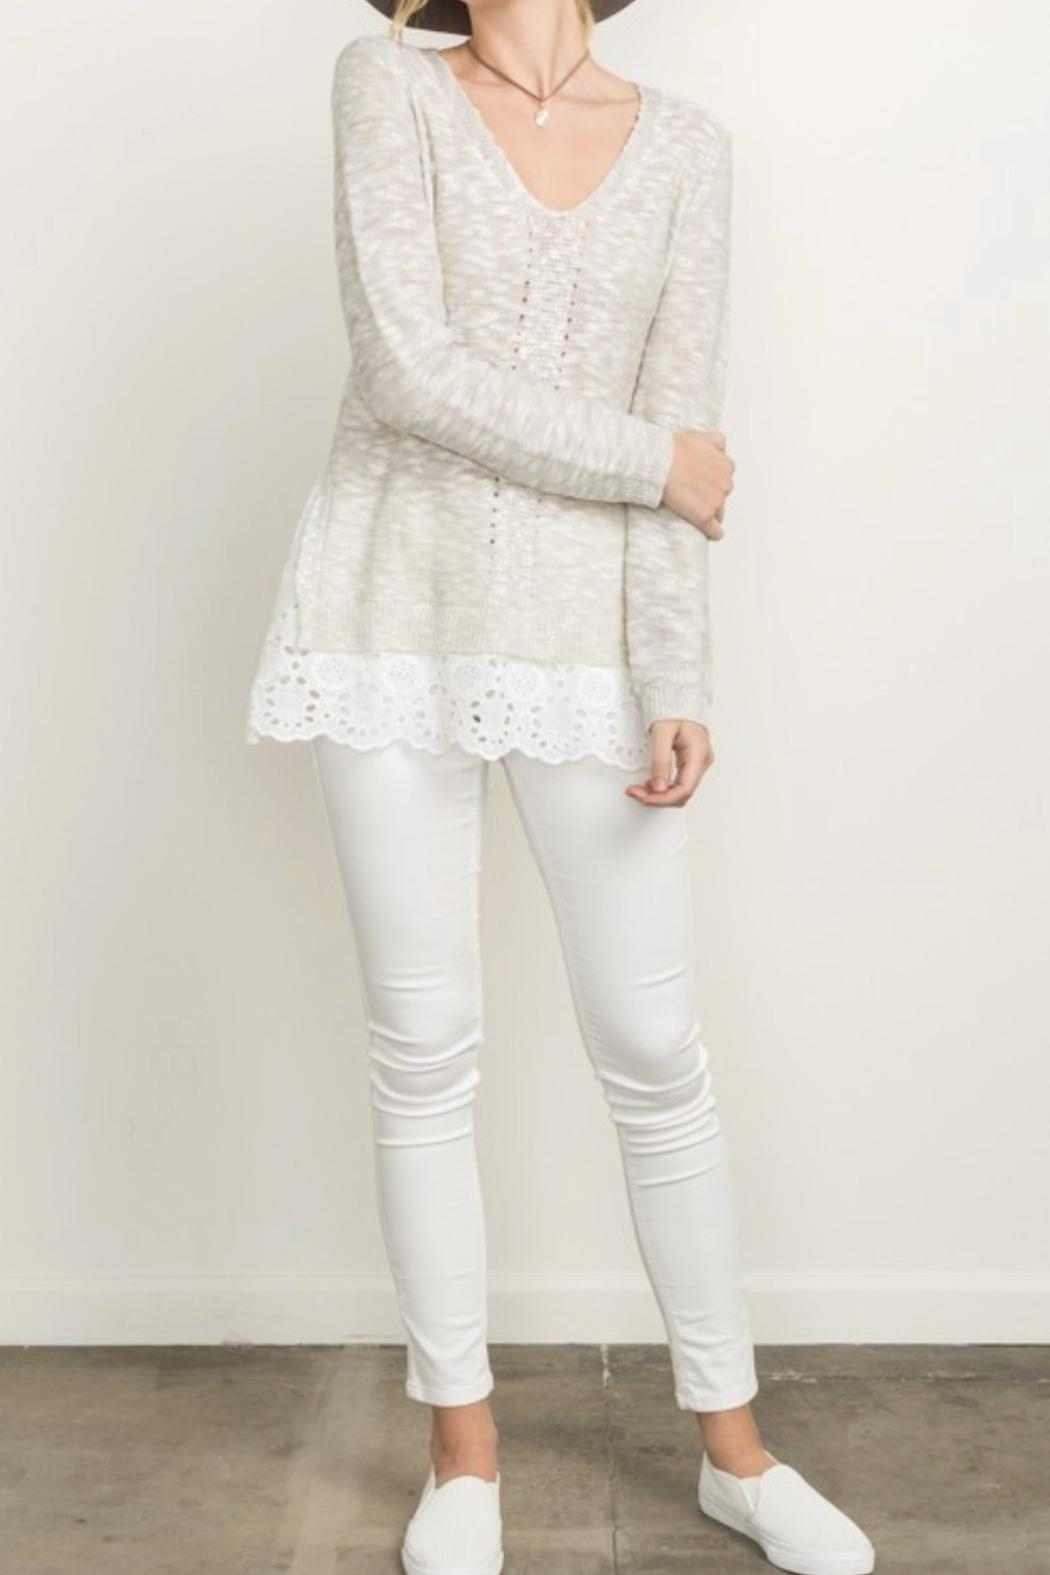 Mystree Eyelet Frill Sweater - Main Image